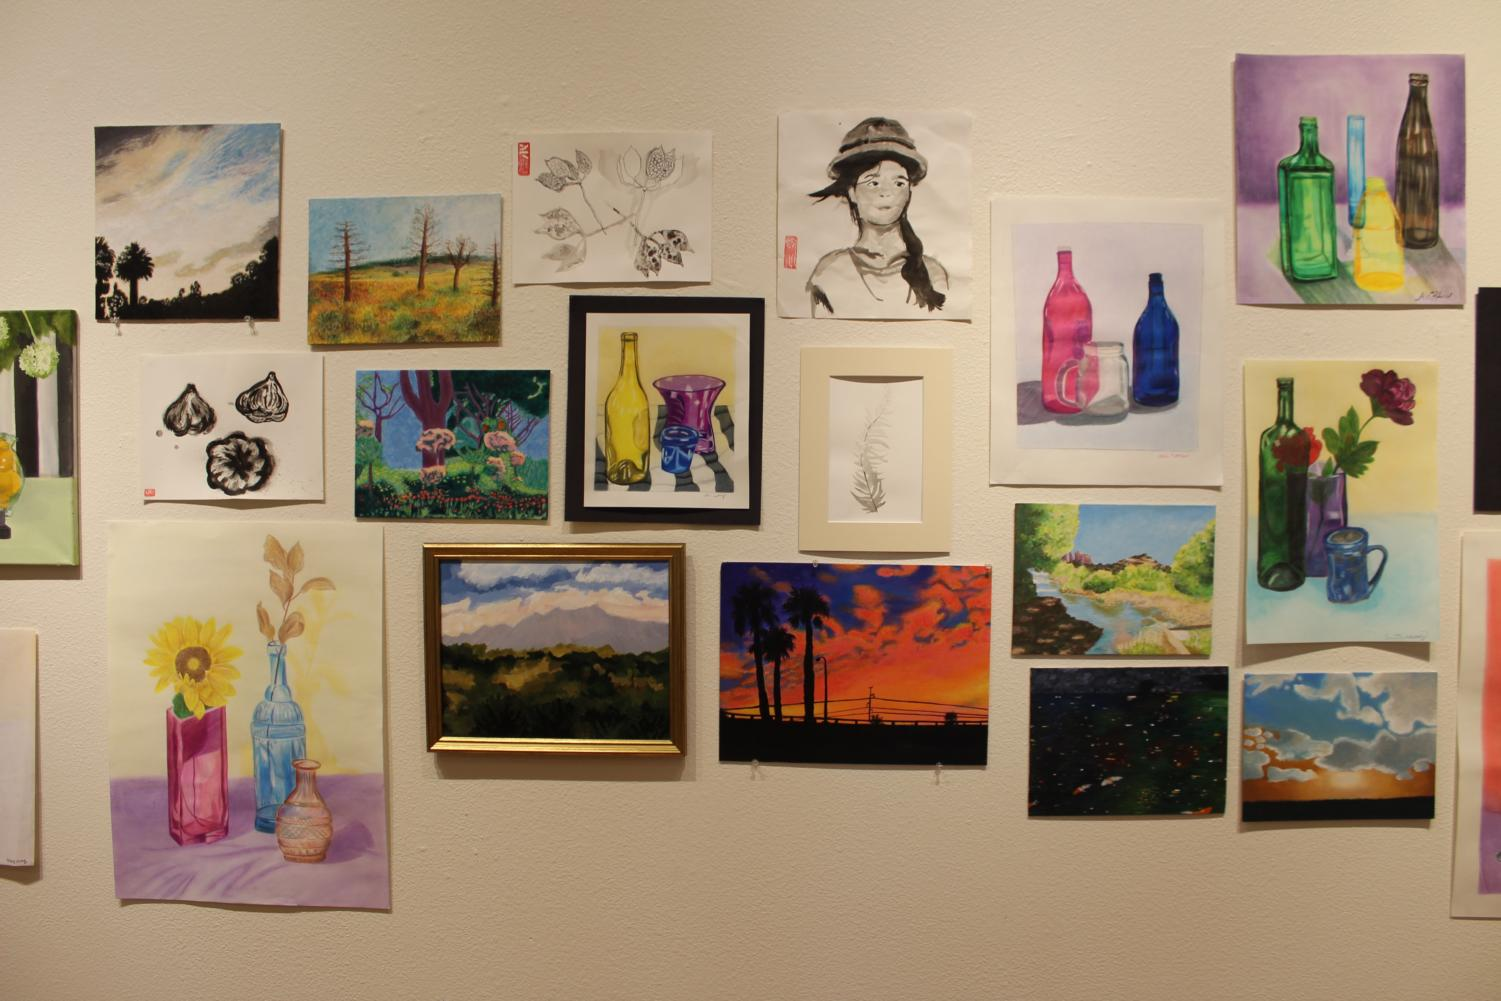 The Art Feast included a multitude of studio art, including these paintings